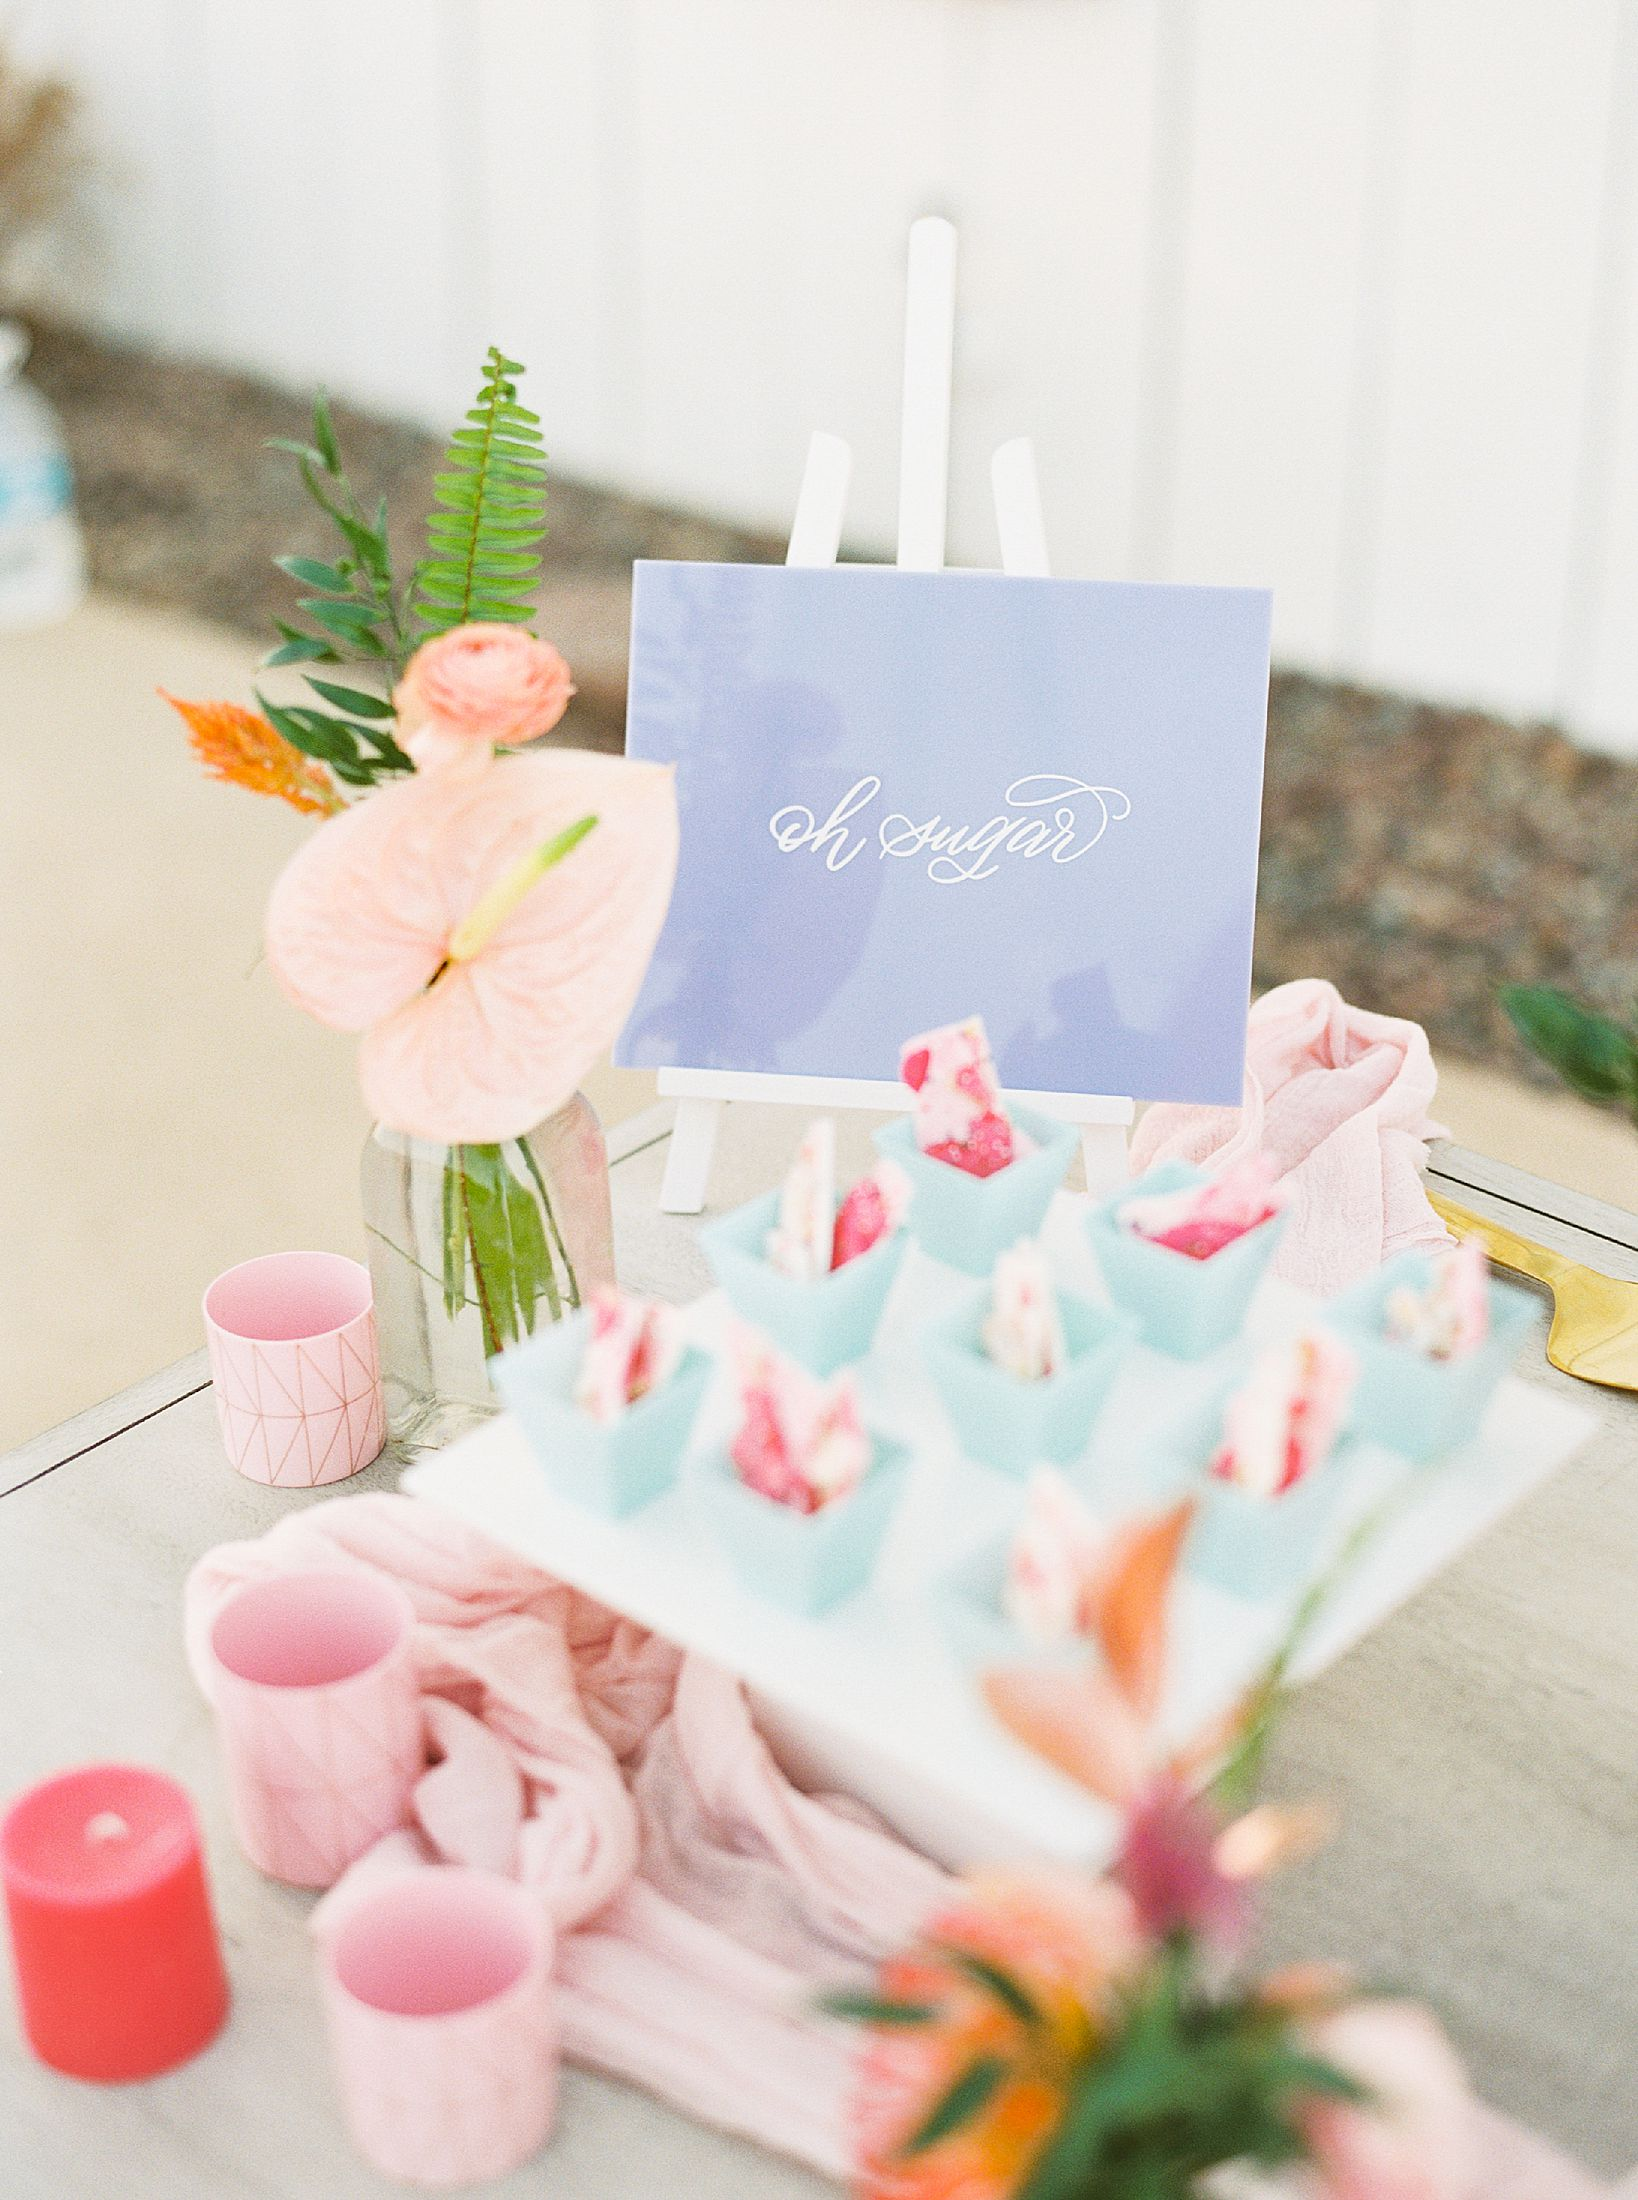 White Barn Edna Valley Wedding Inspiration - San Luis Obispo Wedding - Featured on Green Wedding Shoes - Ashley Baumgartner - FM Events SLO - SLO Wedding Photographer_0034.jpg